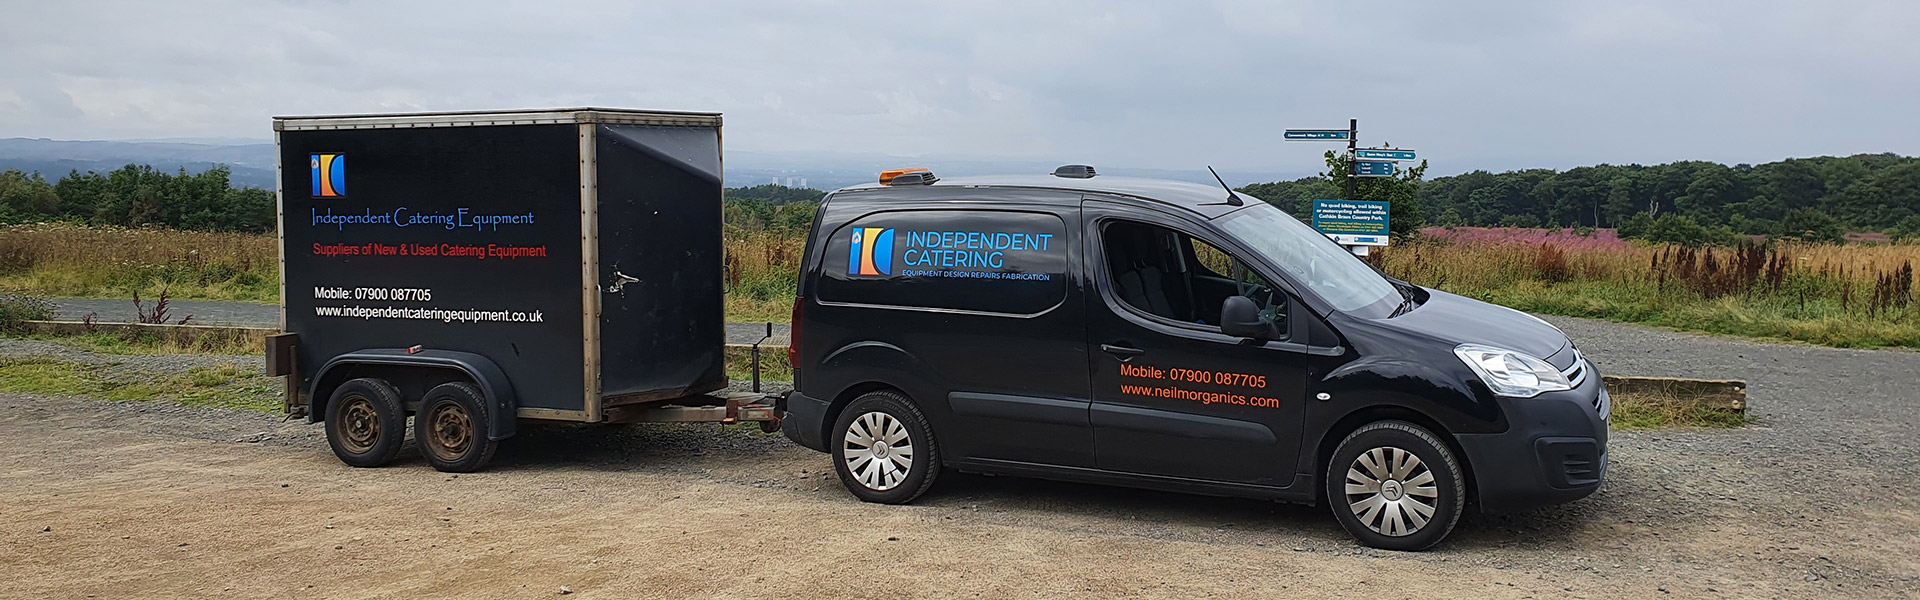 Independent Catering Equipment